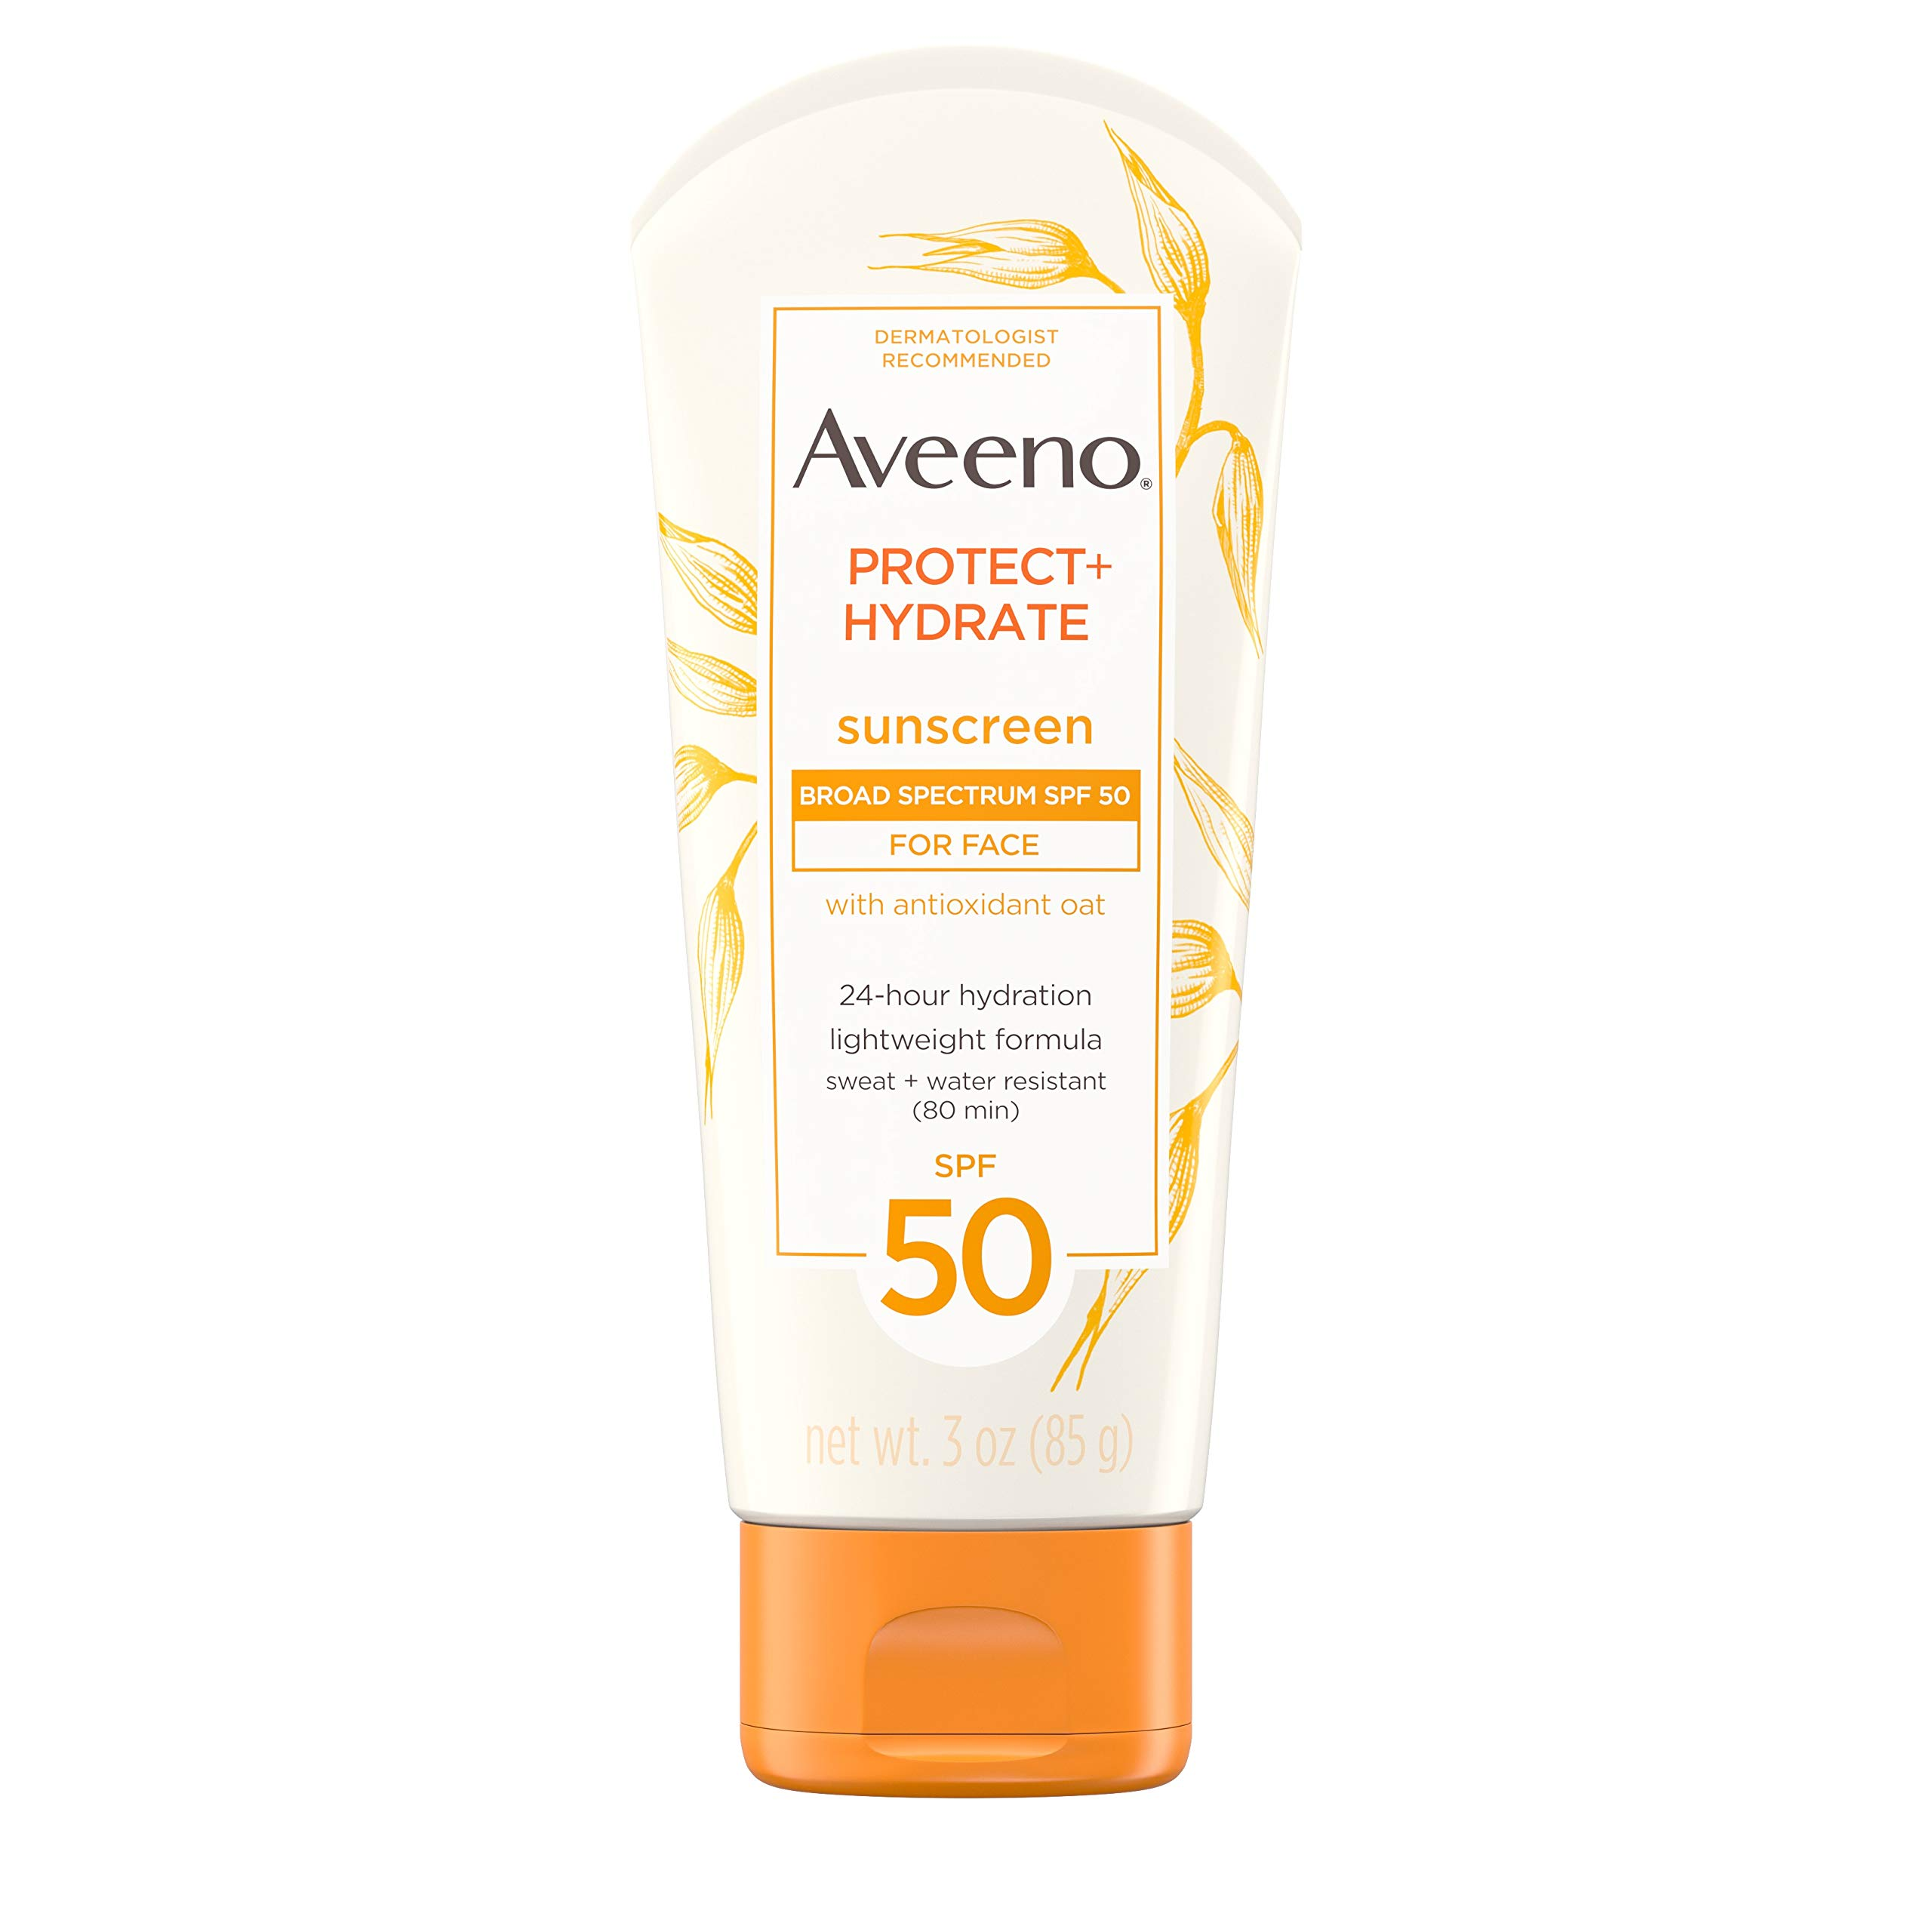 Aveeno Protect + Hydrate Face-Moisturizing Sunscreen Lotion with Broad Spectrum SPF 50 &; Antioxidant Oat, Oil-Free, Lightweight, Sweat- & Water-Resistant Sun Protection, Travel-Size, 3 oz